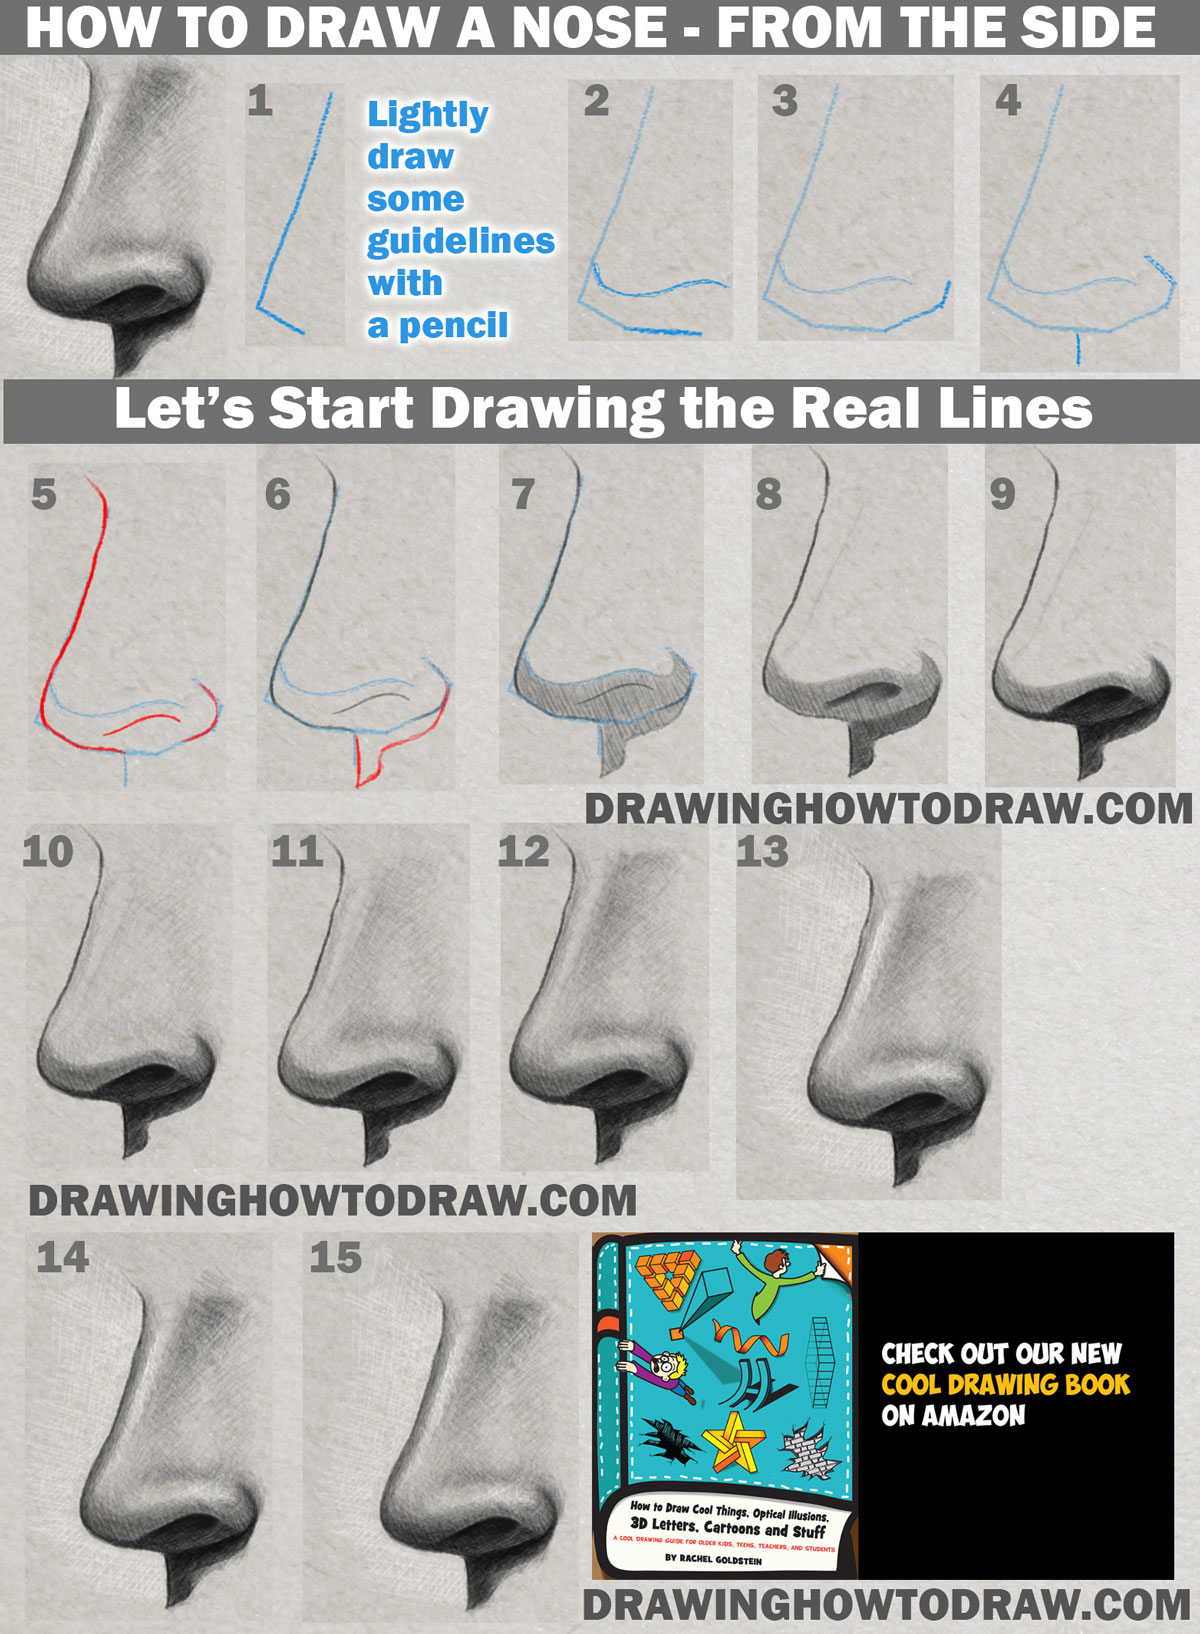 How to draw a Nose from the side with realistic shading step by step tutorial